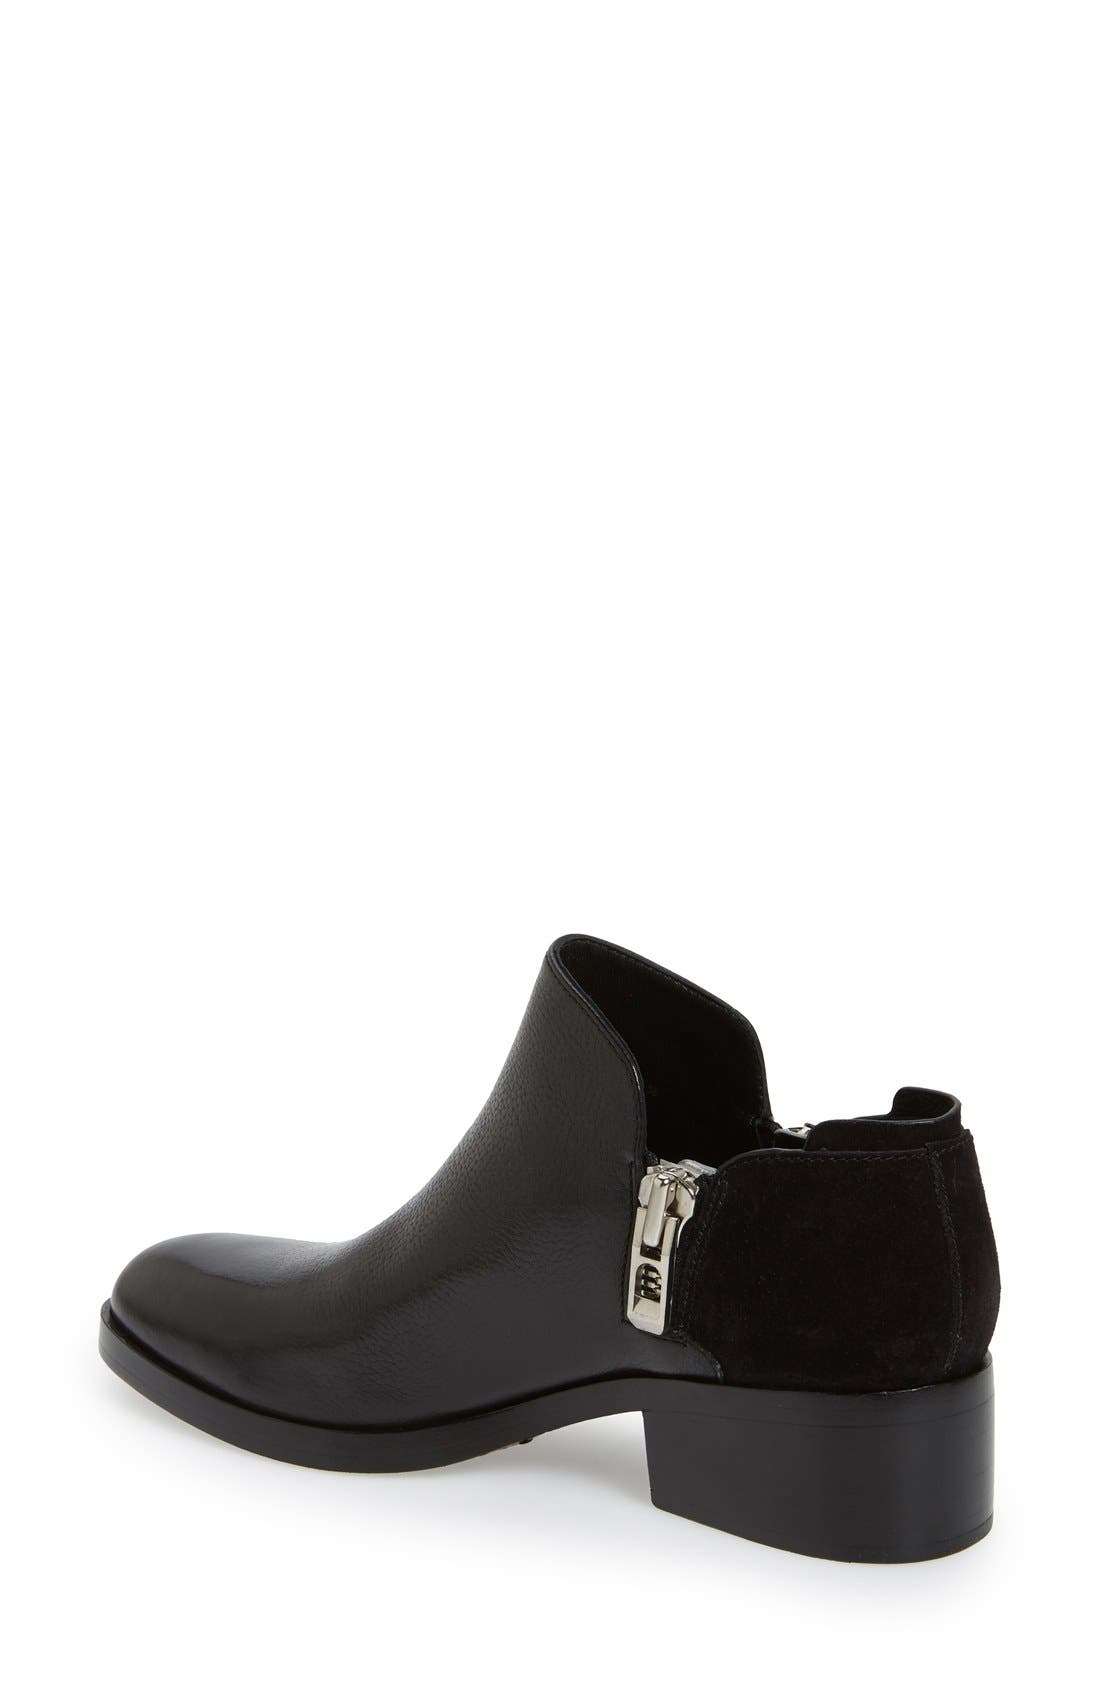 Alternate Image 2  - 3.1 Phillip Lim Alexa Zip Ankle Bootie (Women)